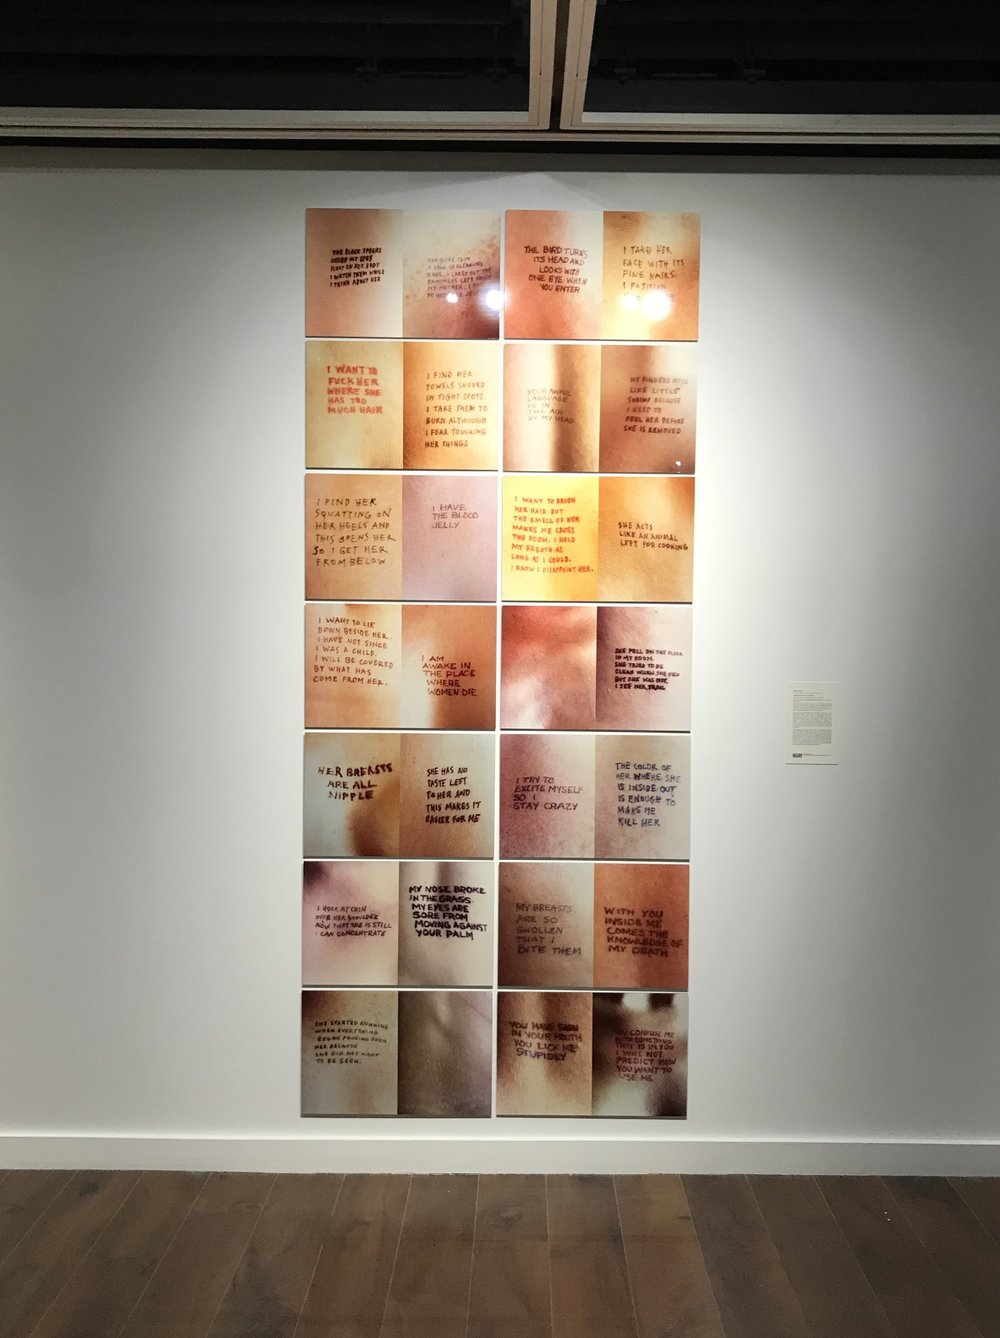 25_Jenny Holzer, Untitled (Selections from Lustmord), 1994, installation view, The Un-Heroic Act, Shiva Gallery JJC. Photo Monika Fabijanska